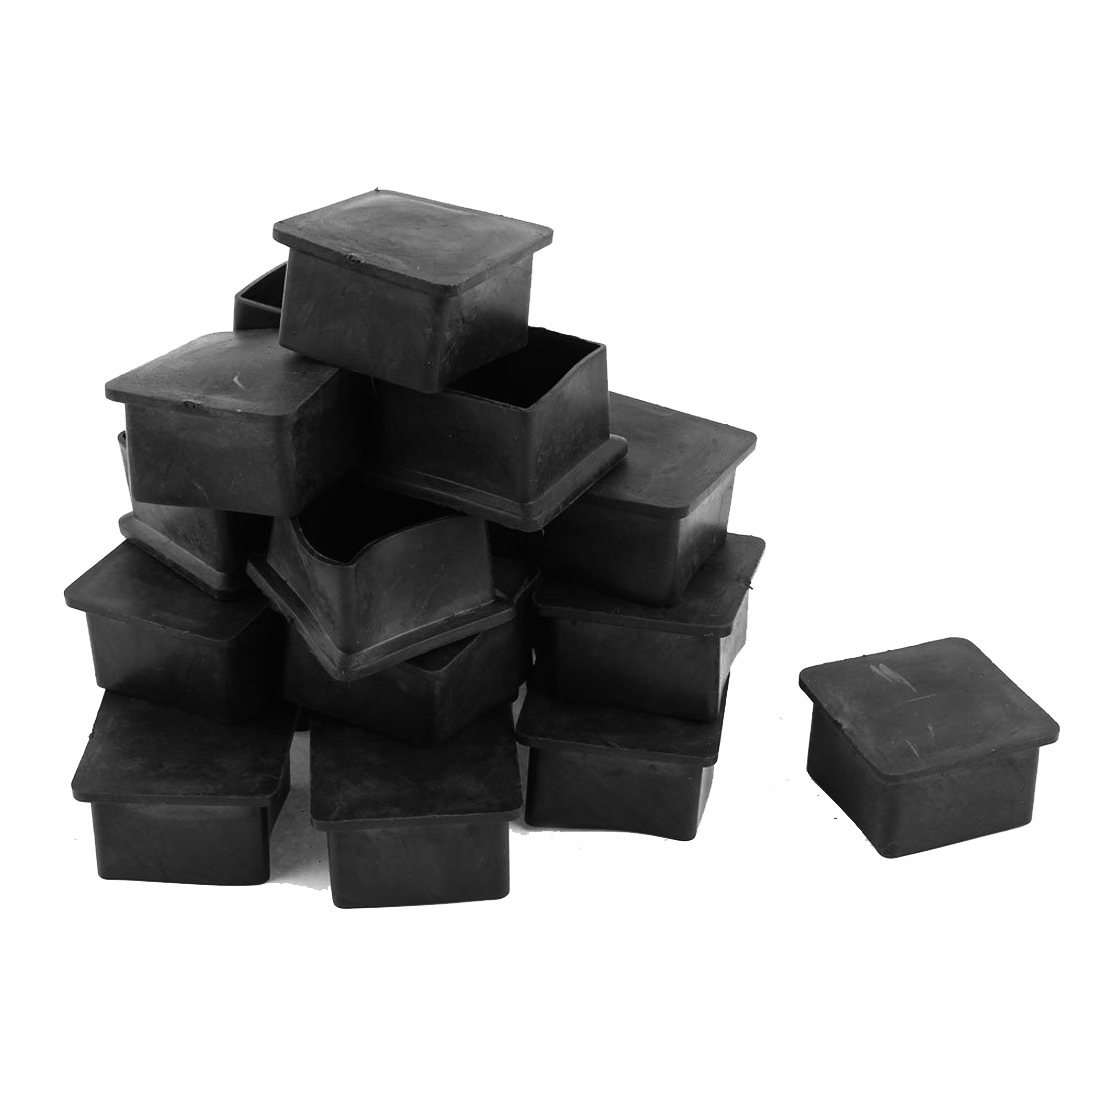 Hot Sale 40mm X 40mm Square Rubber Furniture Leg Foot Cover Protector 24 Pcs